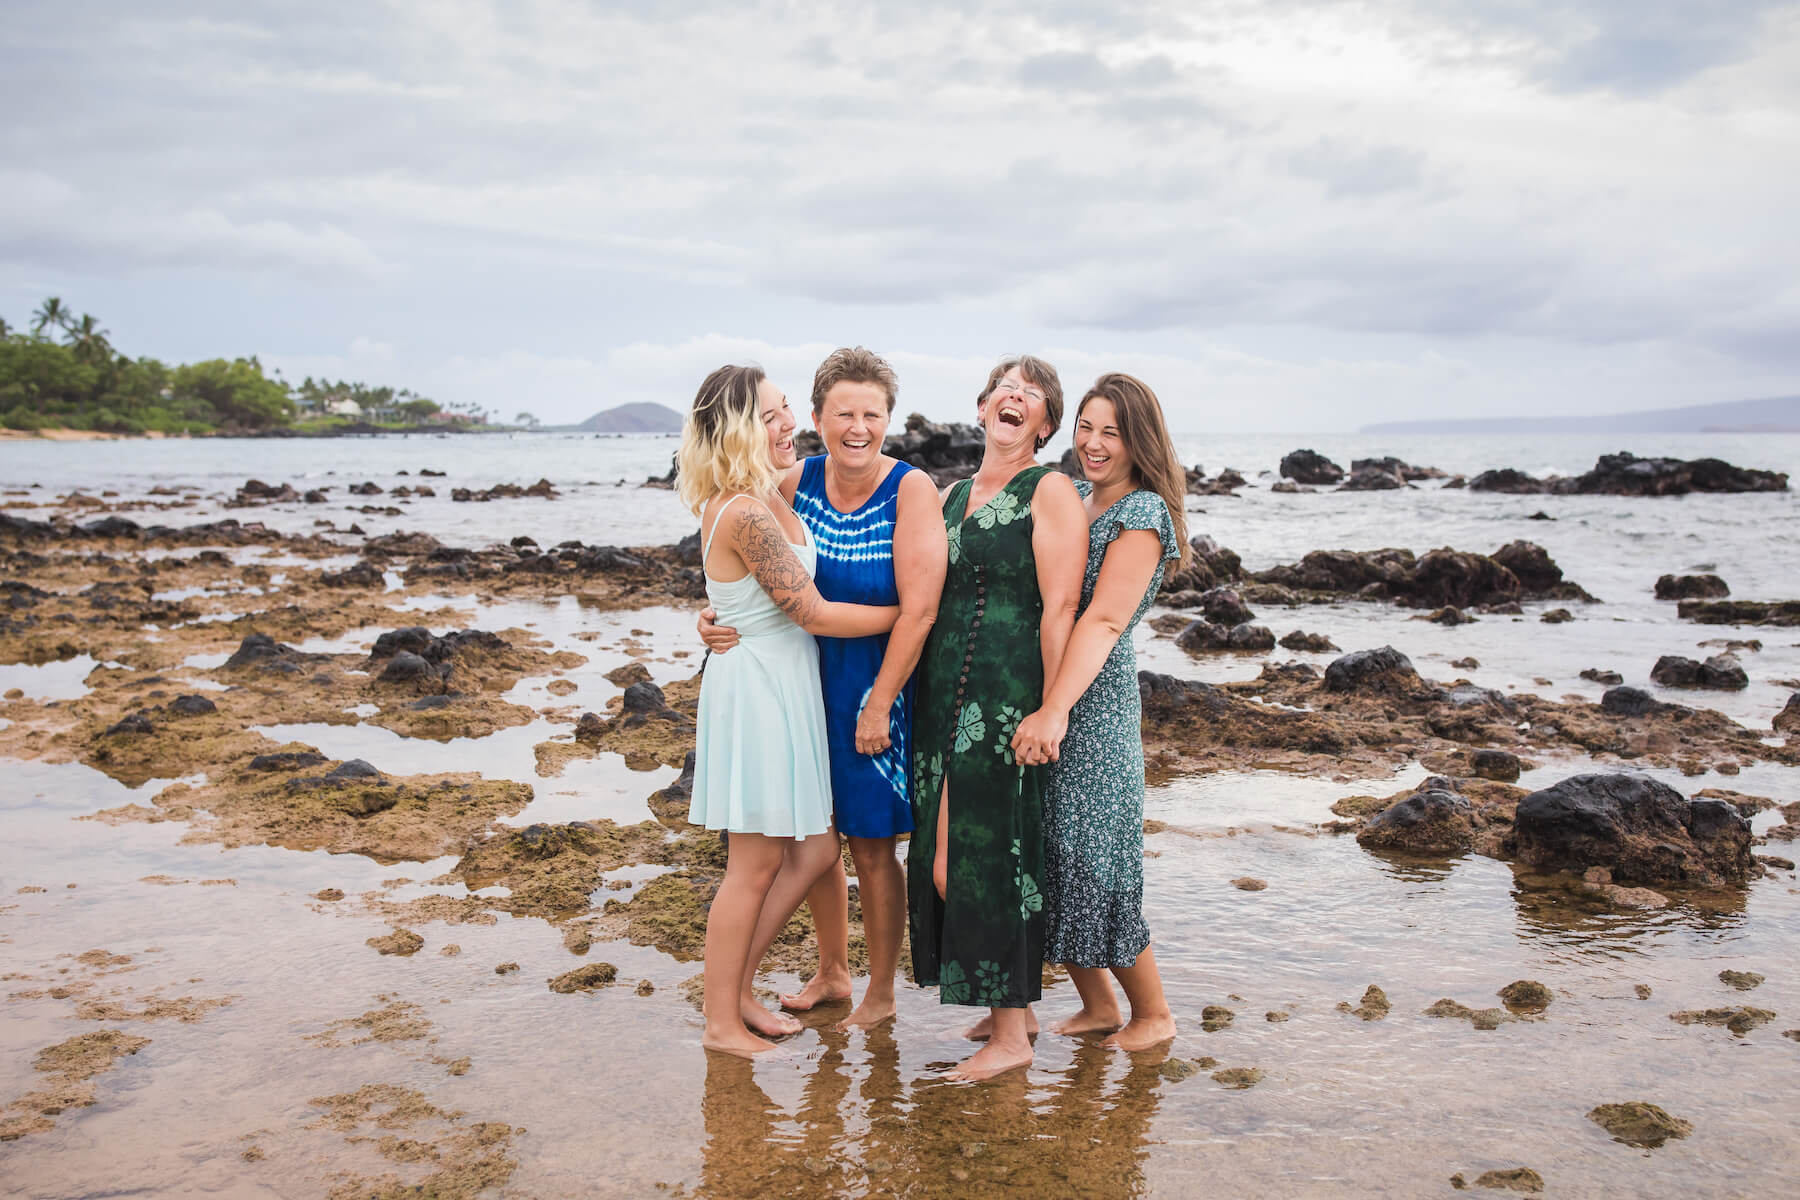 LGBTQ Family of 4 holding each other and laughing on the beach in Maui, USA